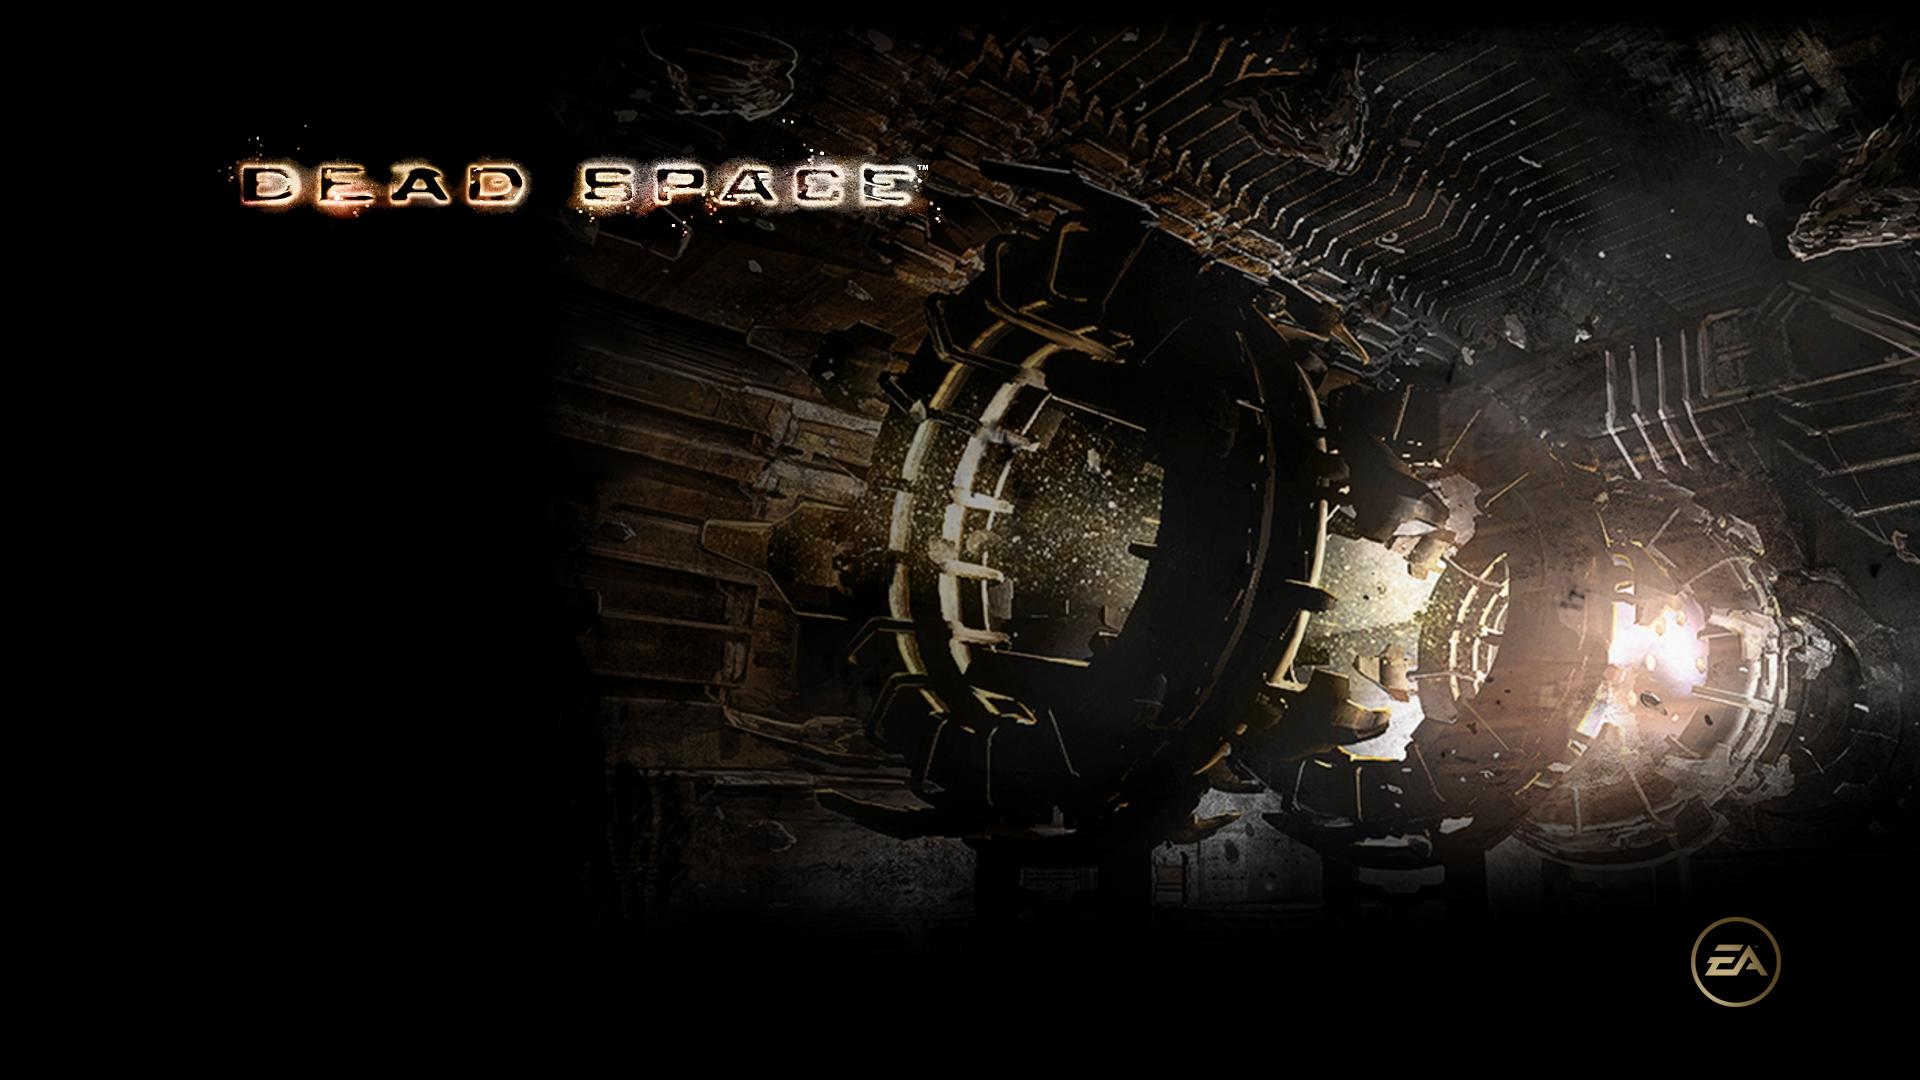 Dead space full hd wallpaper and background 1920x1080 - Dead space mobile wallpaper ...